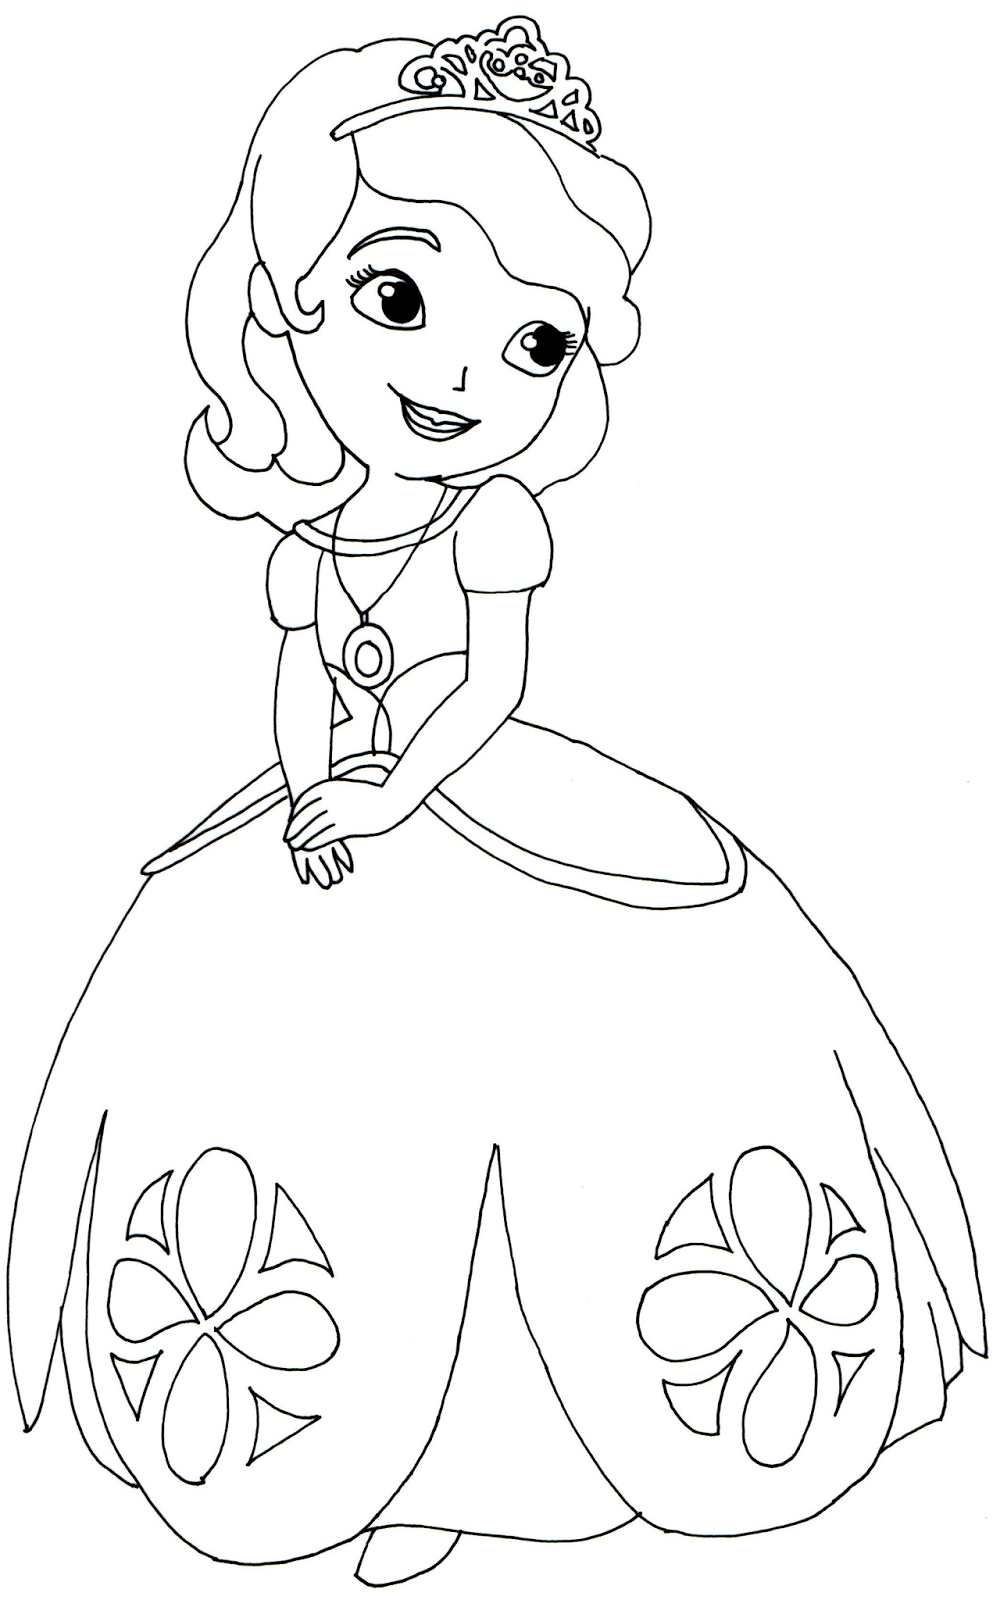 Genial Sofia First Coloring Pages Cartoon Wallpapers